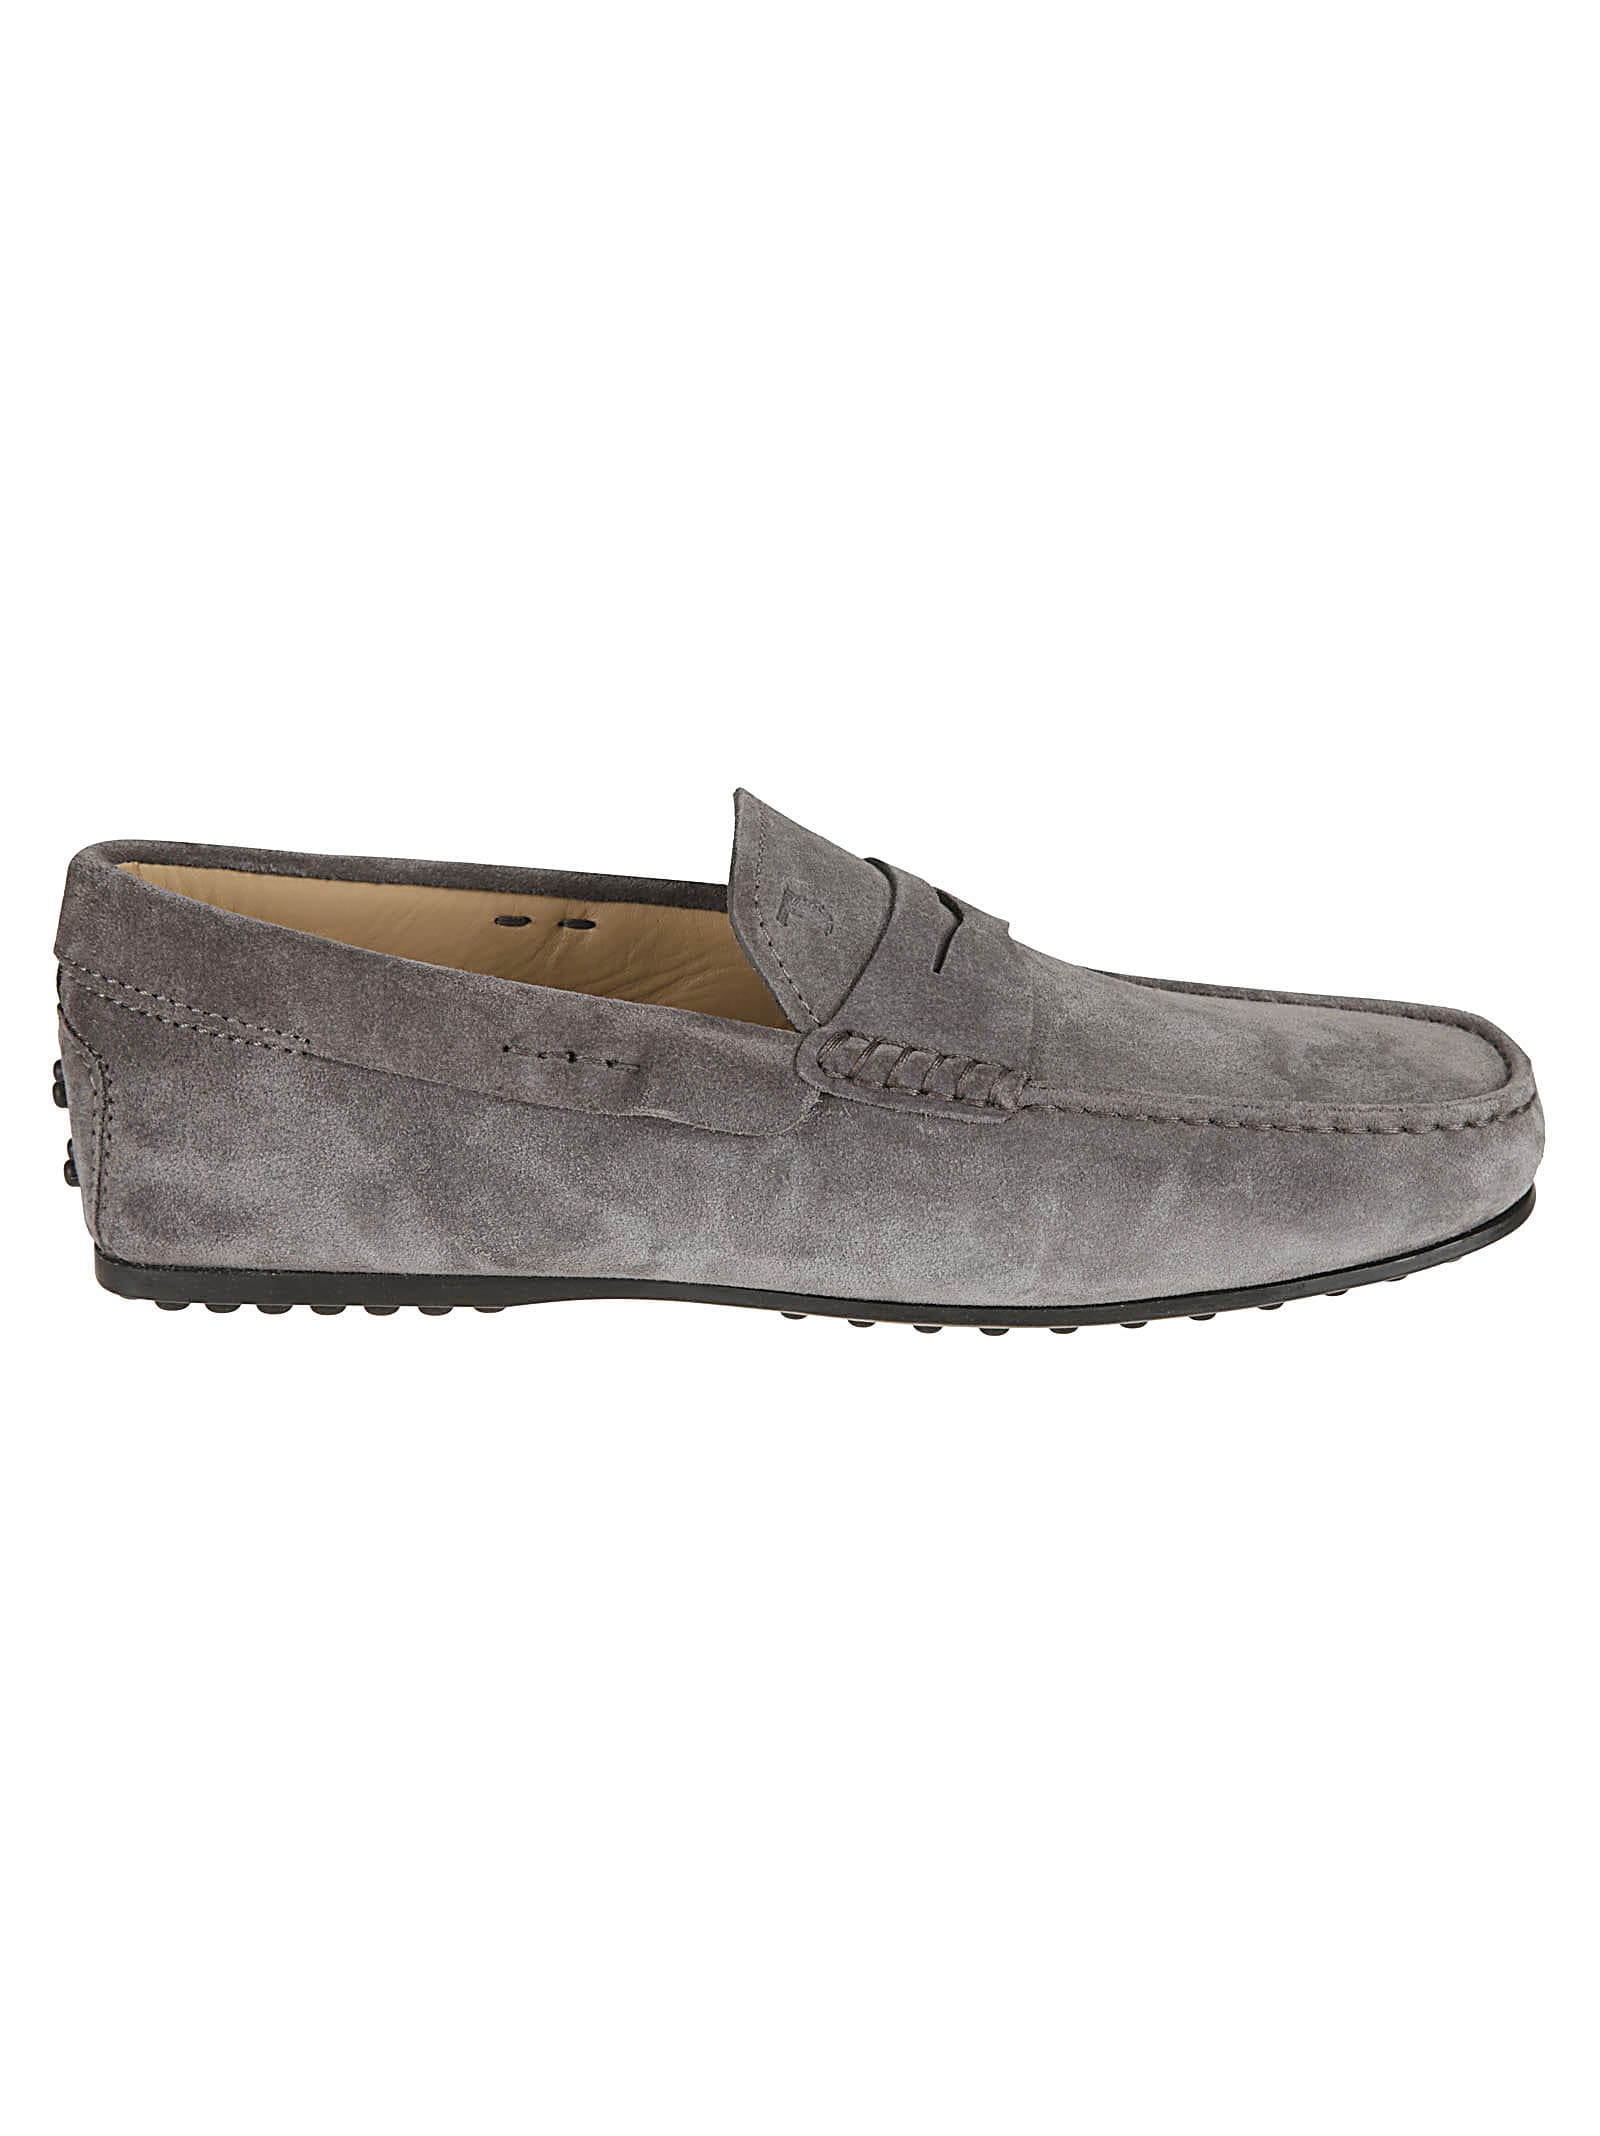 Classic Slide-on Loafers from Tods